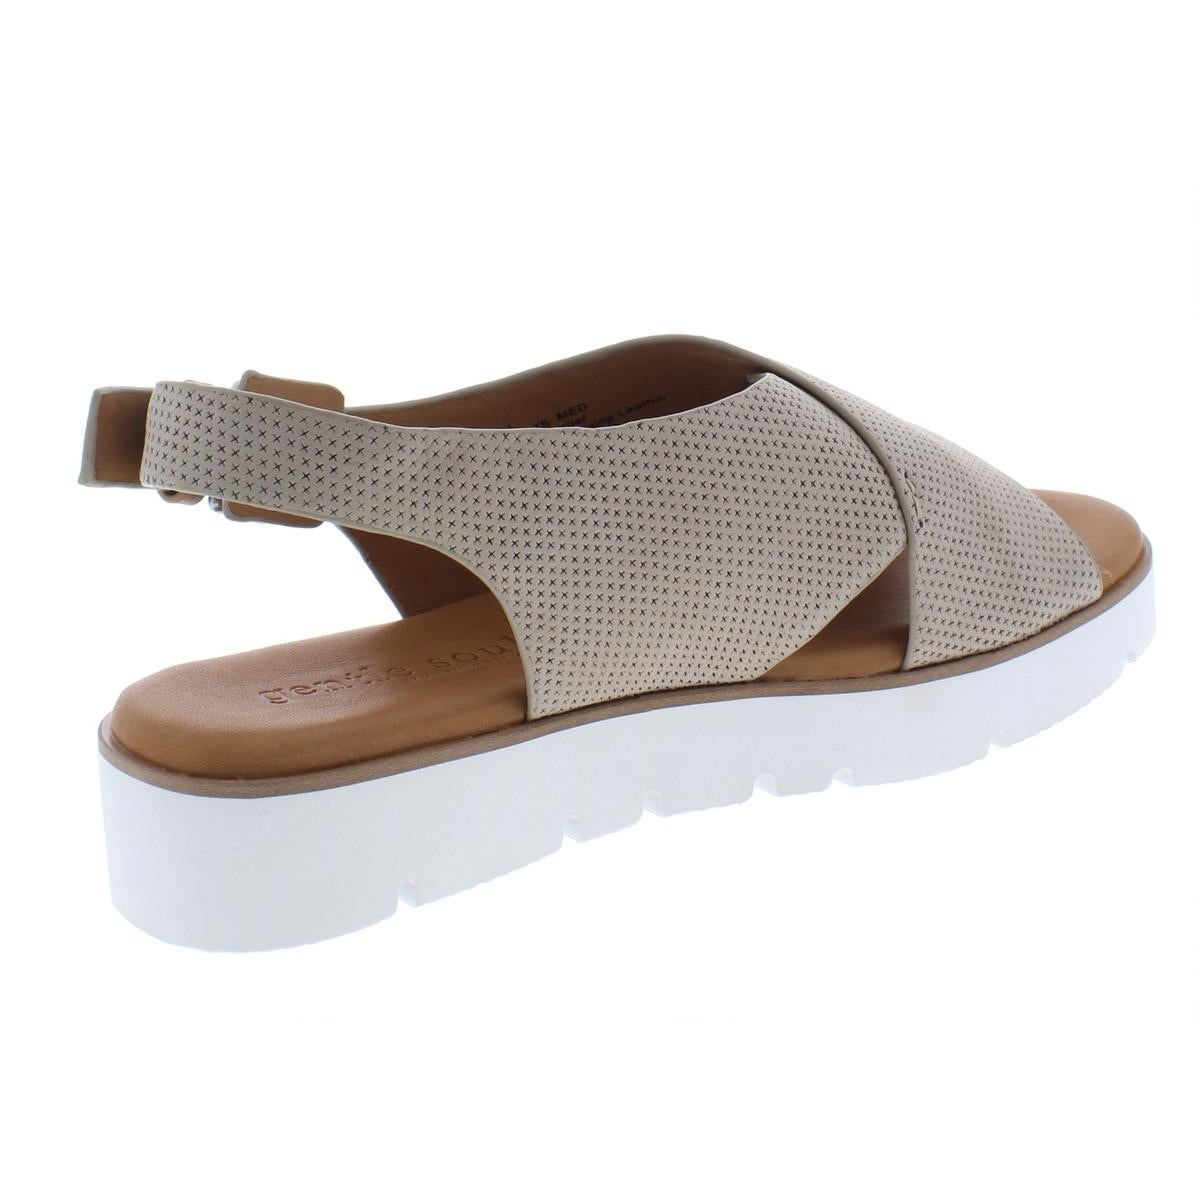 3798b80b3b1 Shop Gentle Souls by Kenneth Cole Womens Kiki Platform Sandals - Free  Shipping Today - Overstock - 21110083